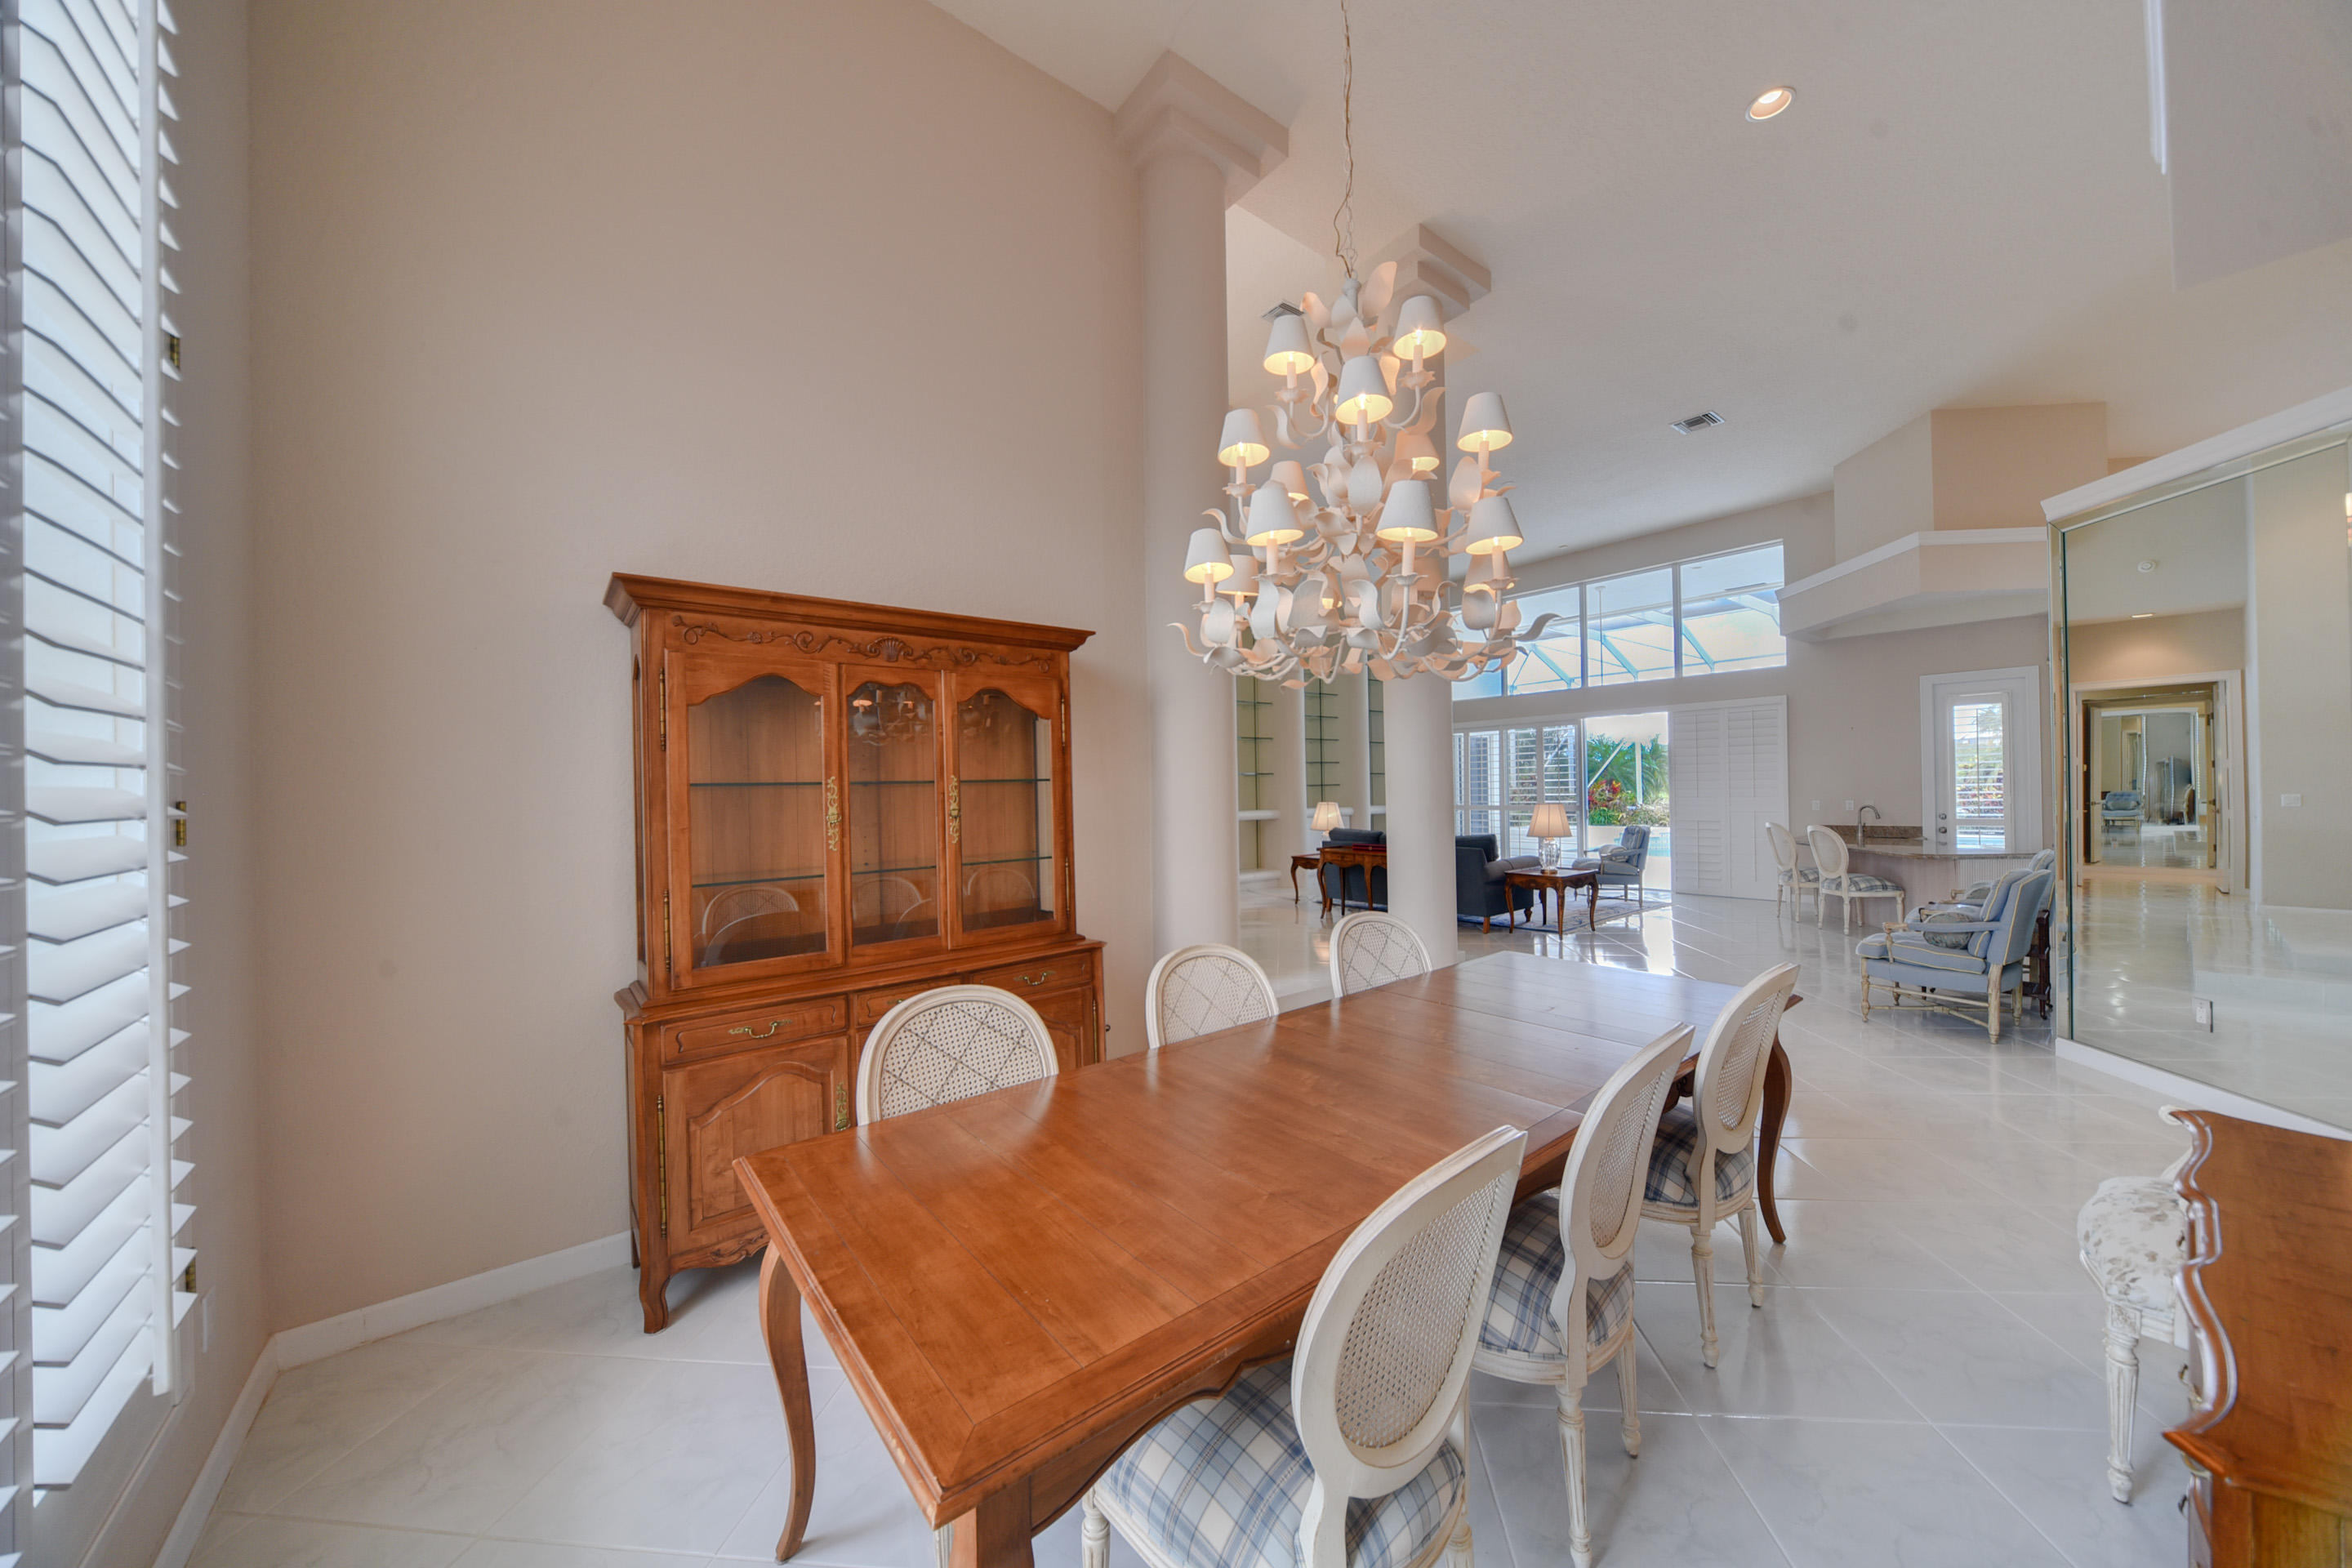 BEAR LAKES HOMES FOR SALE